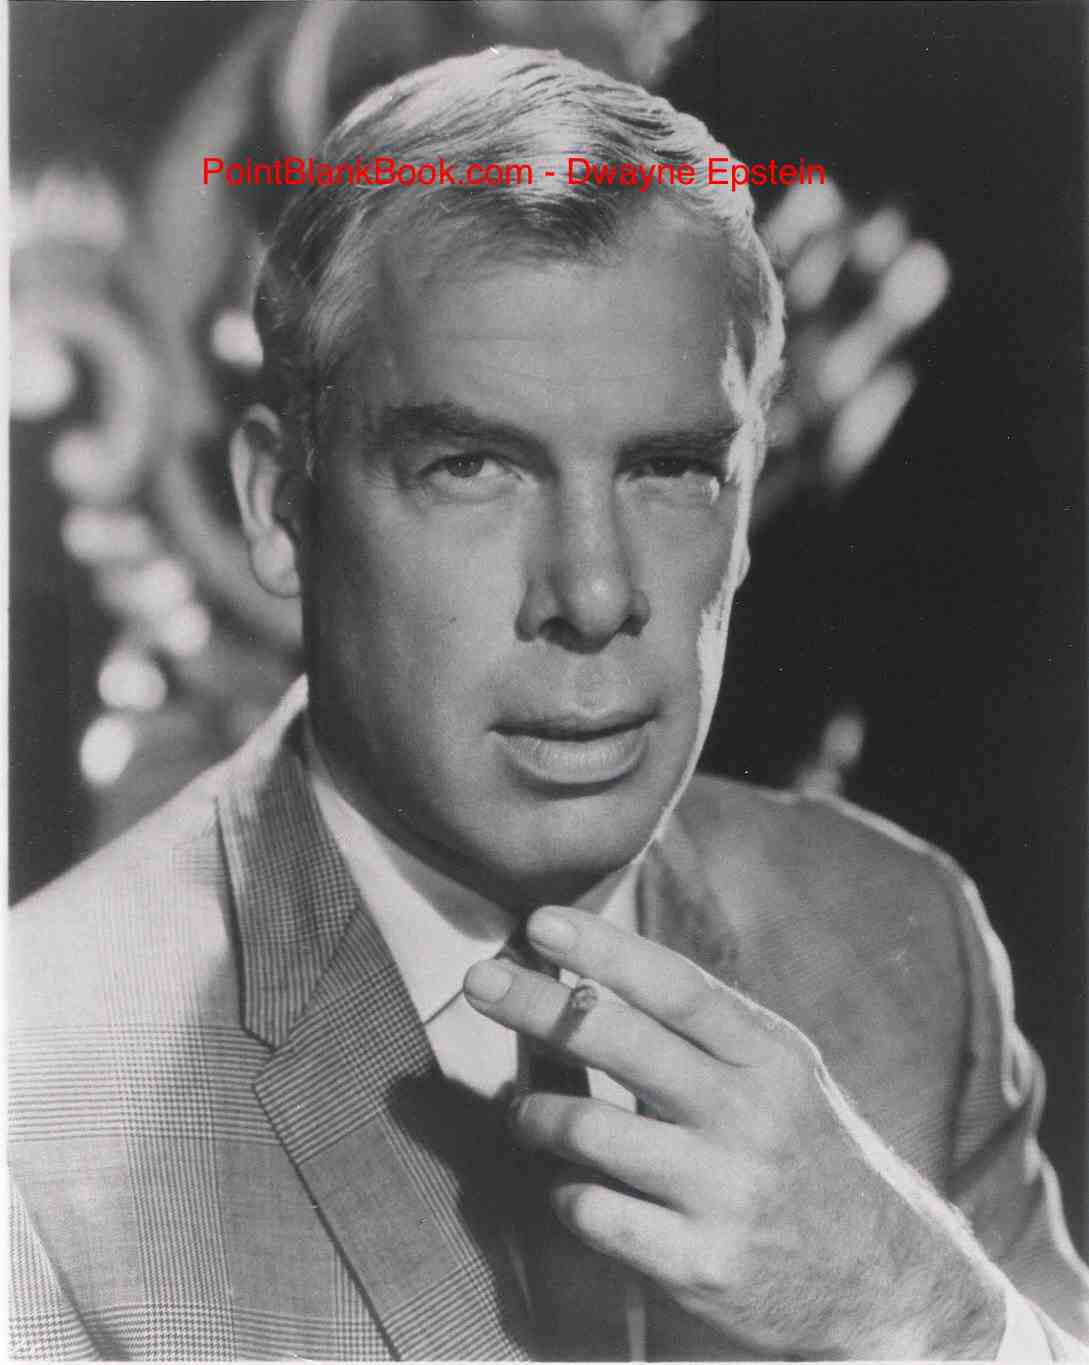 Lee Marvin, in his prime, as a reference point...